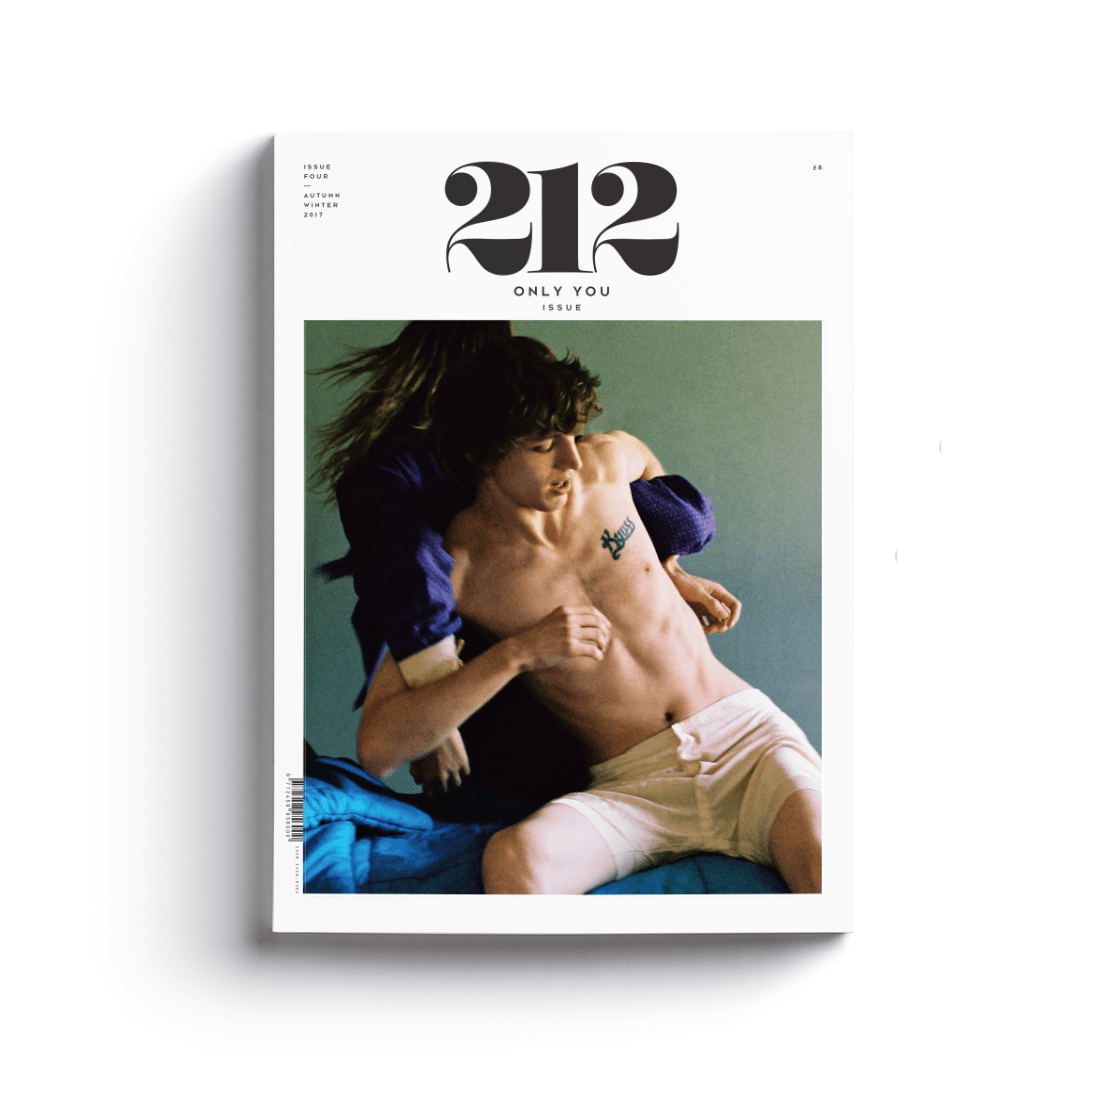 212-Issue-04-Cover-1100